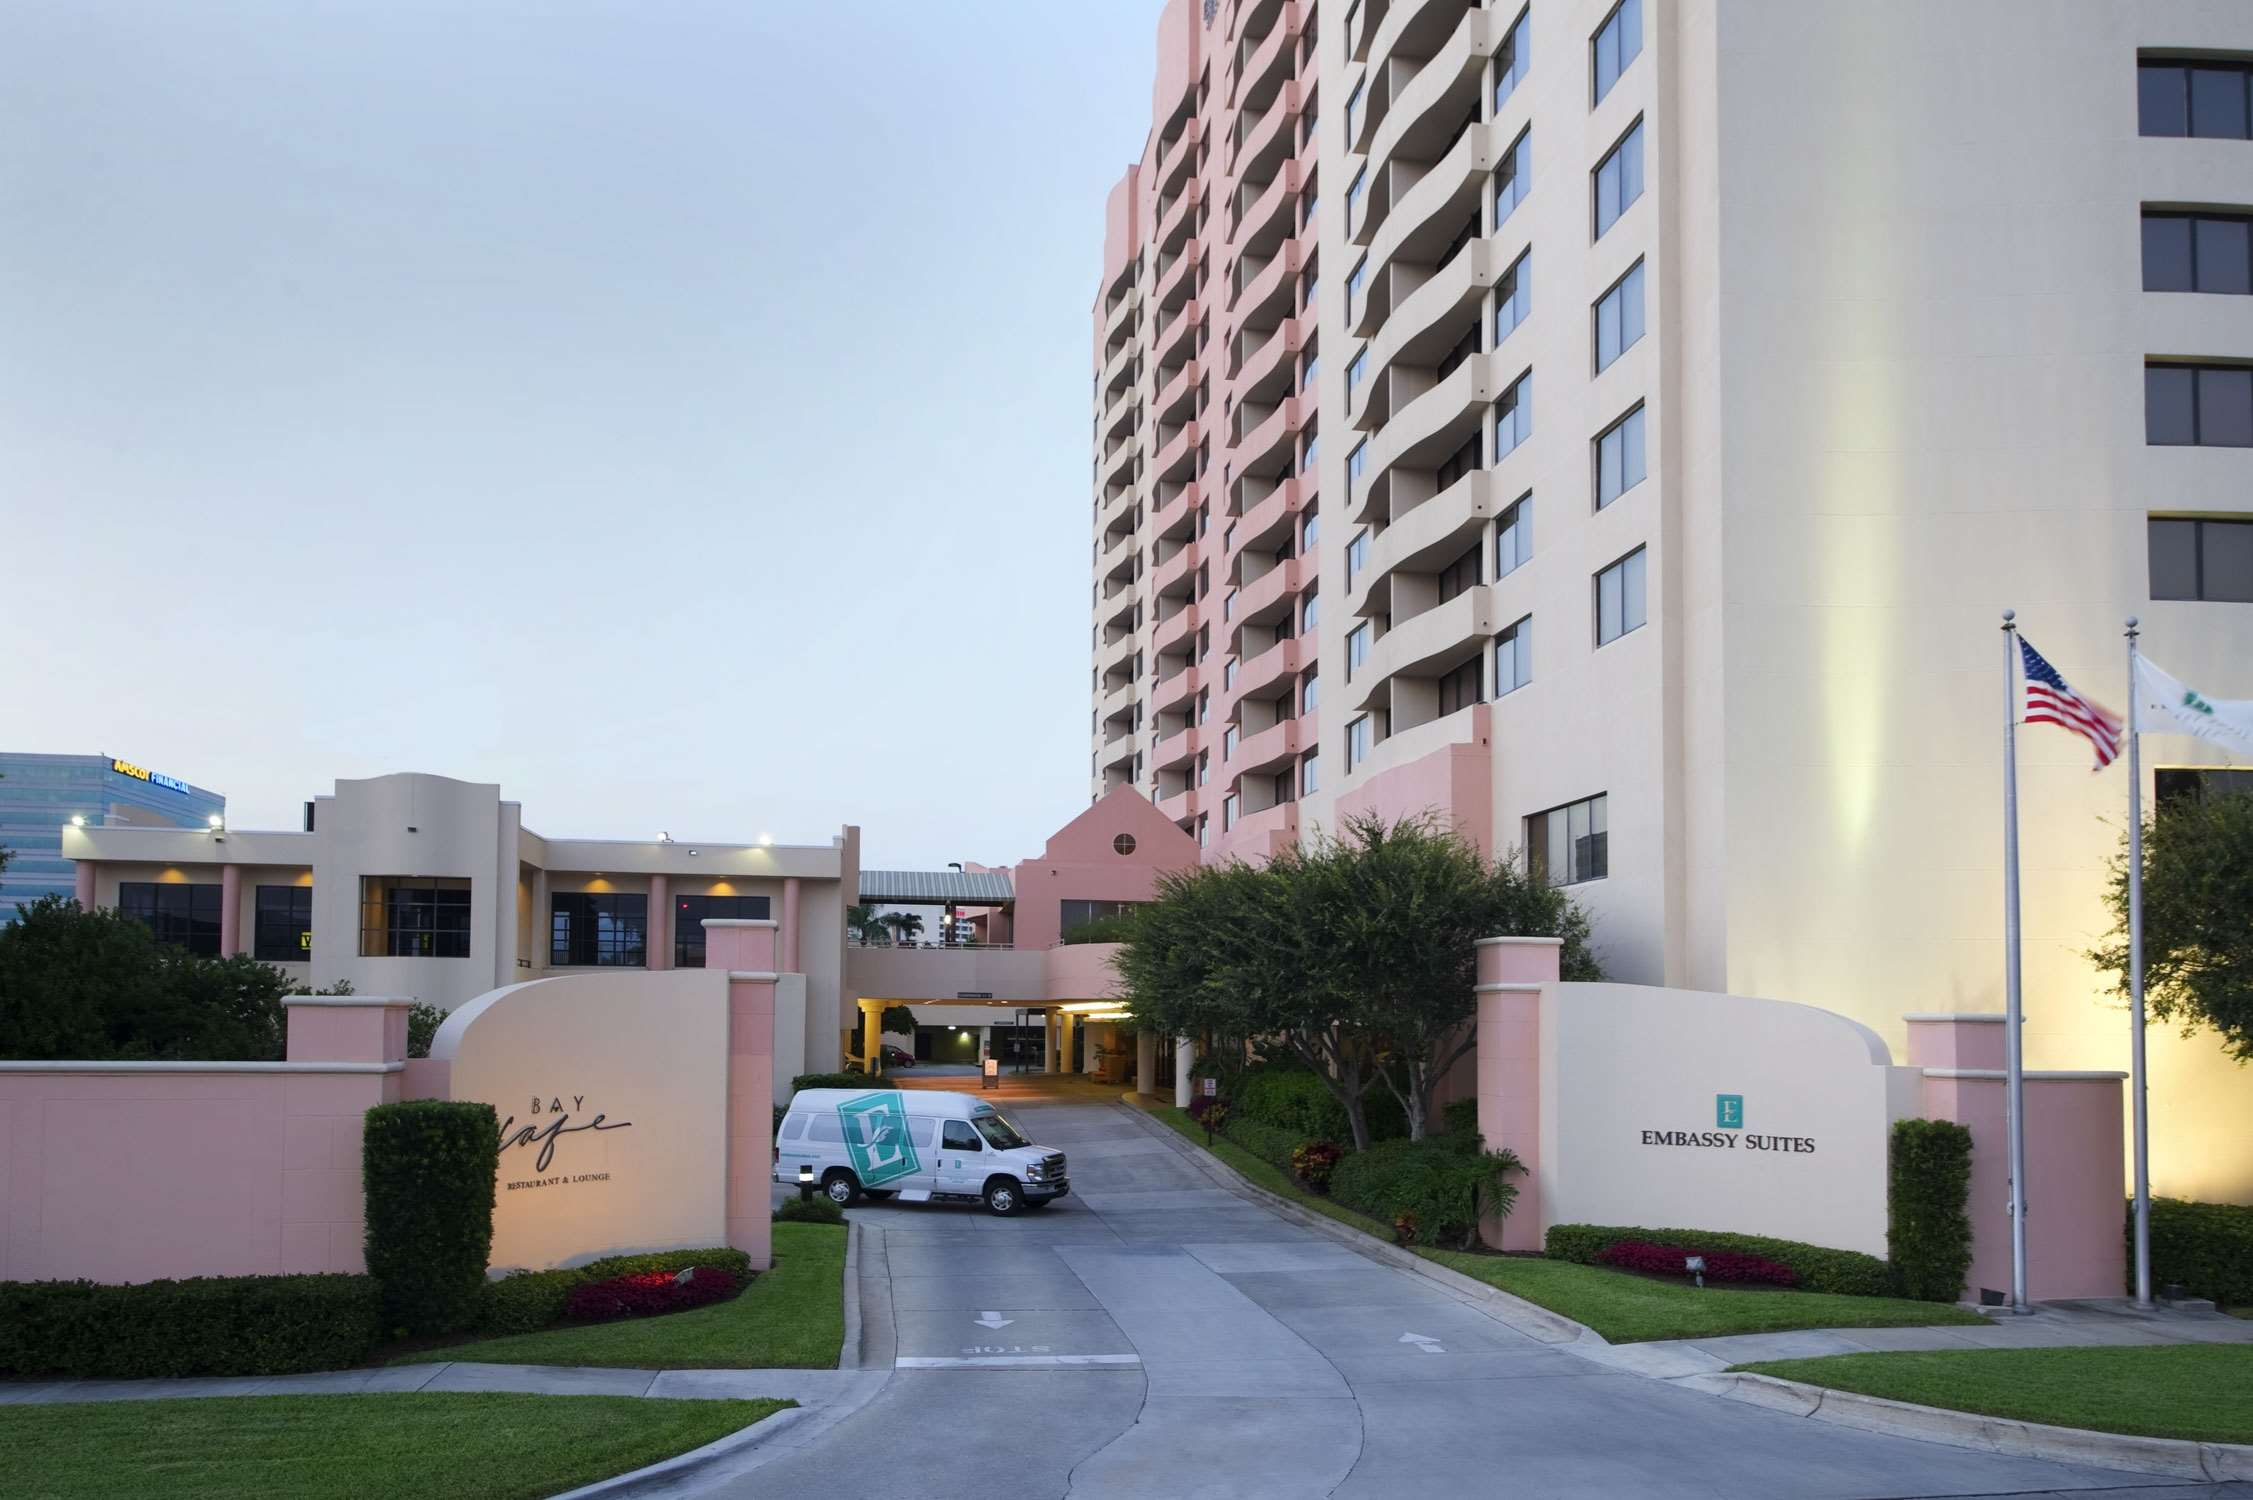 Embassy Suites by Hilton Tampa Airport Westshore image 2